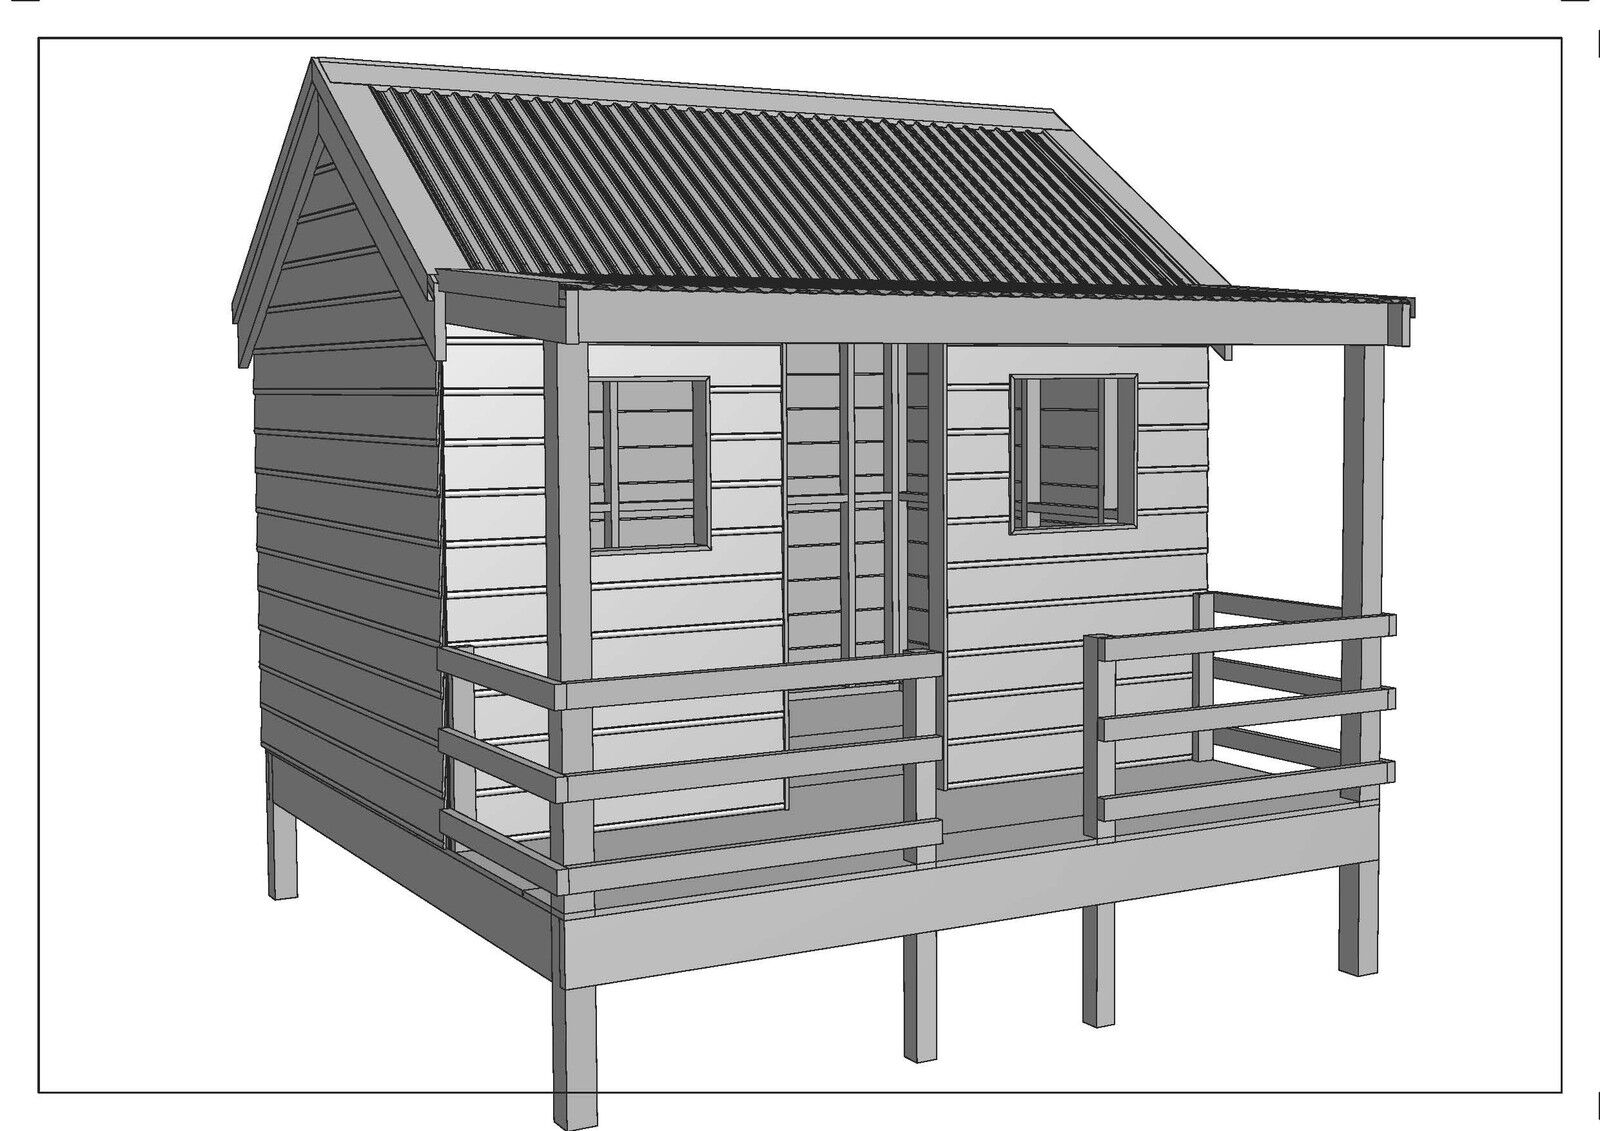 cubby house The lifespan kids cubby houses are intended to provide a safe and healthy setting for your kids if you're after a cubby house for your backyard and you want one that is designed with safety and quality in mind, then look no further than lifespan kids we support a healthy and active lifestyle for australian families and all of our cubby houses provide exactly that.